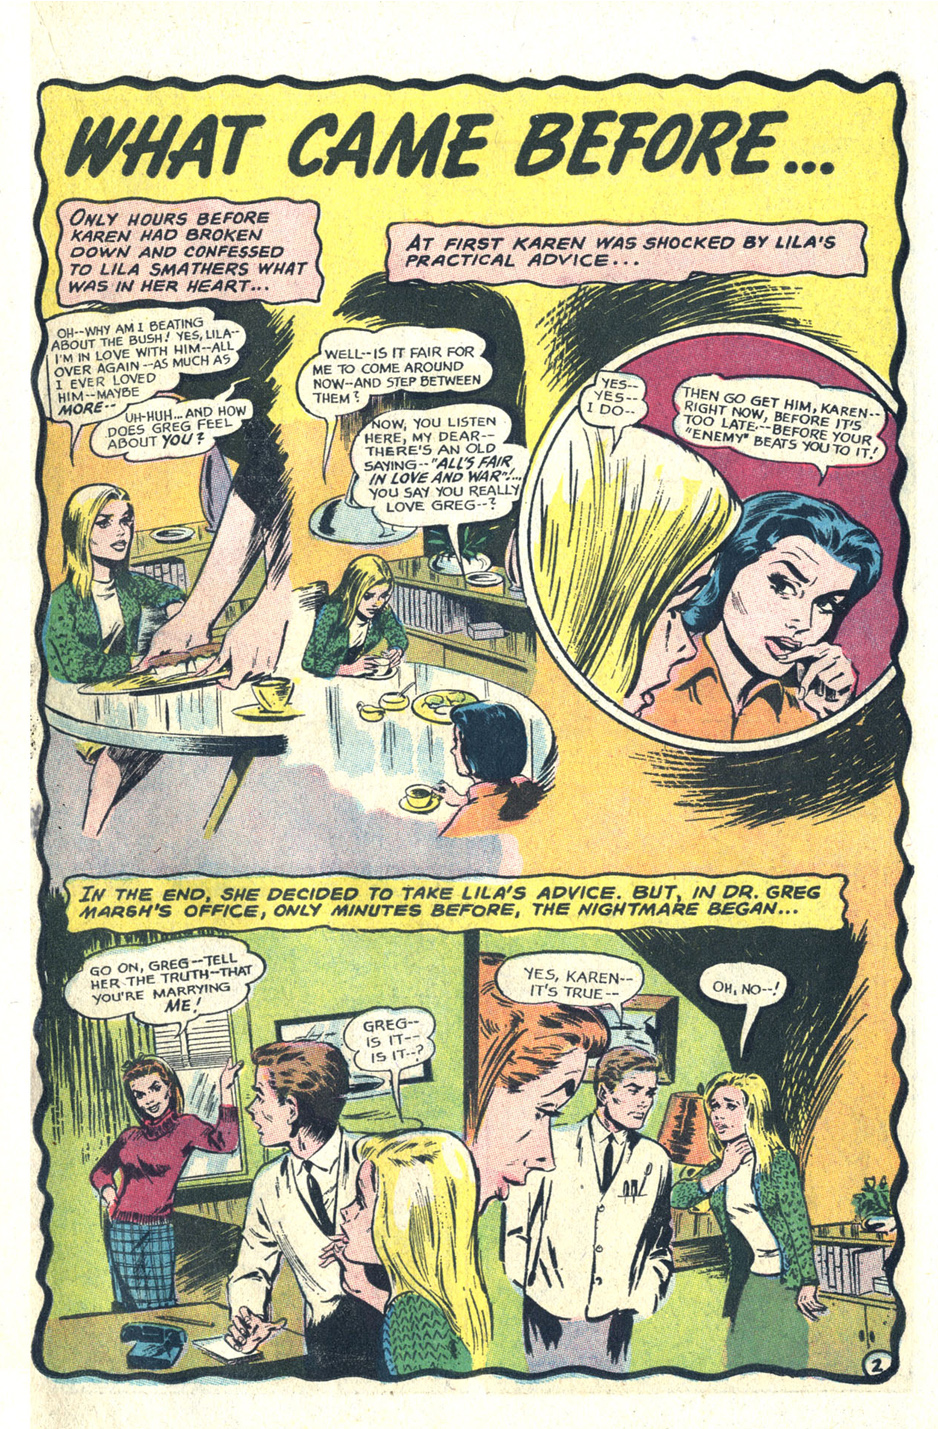 Reach for Happiness comic book romance soap opera DC Comics